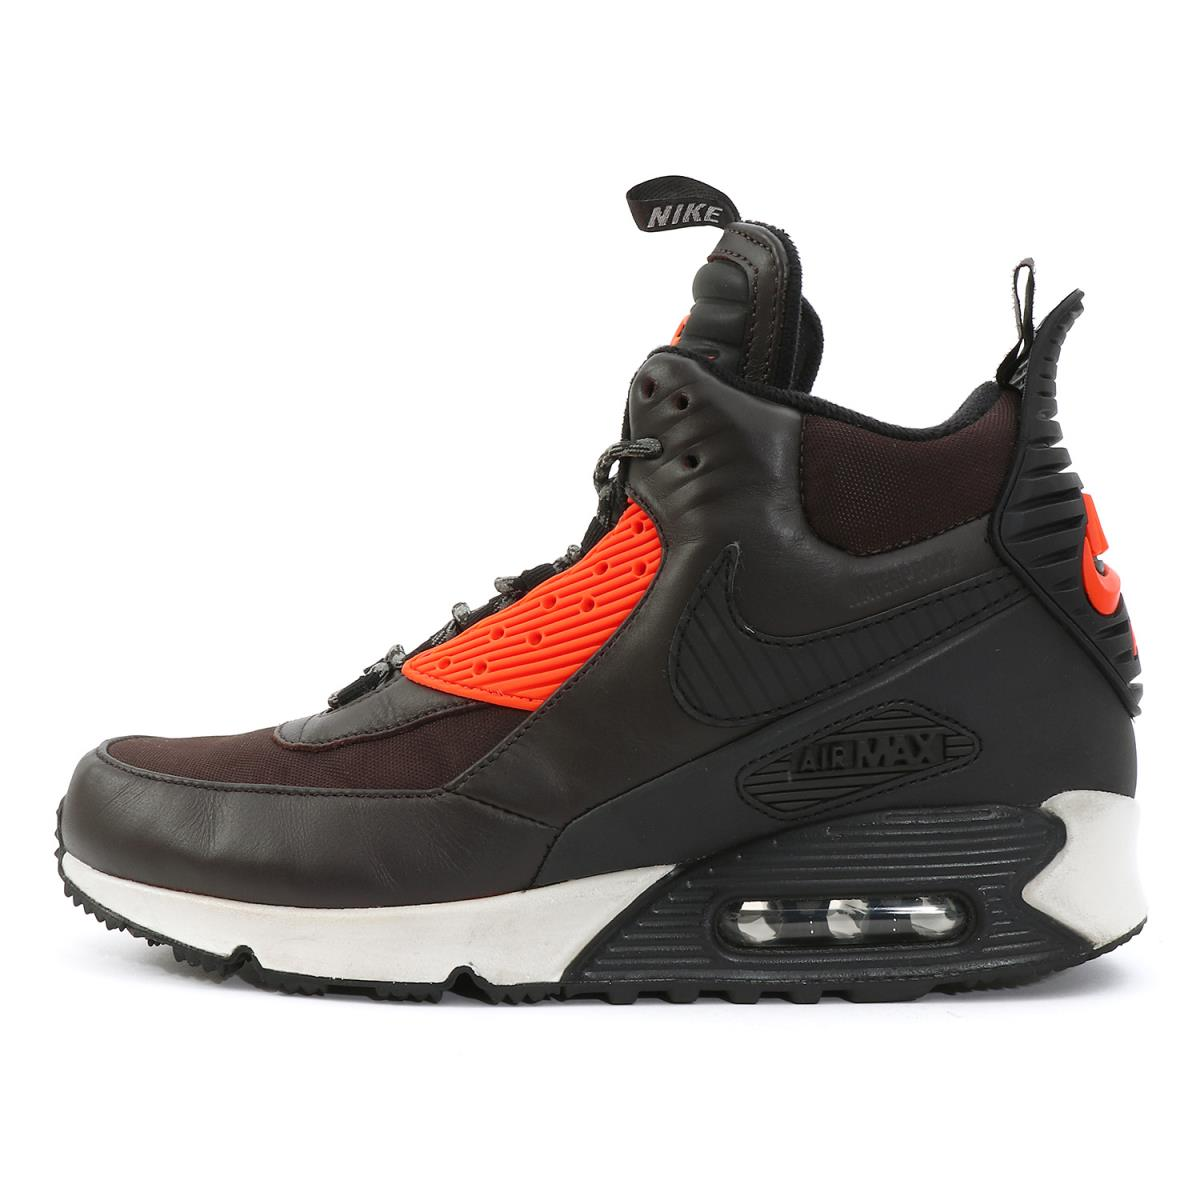 NIKE (Nike) AIR MAX 90 SNEAKERBOOT WINTER (684,714 200) velvet brown US8(26cm)